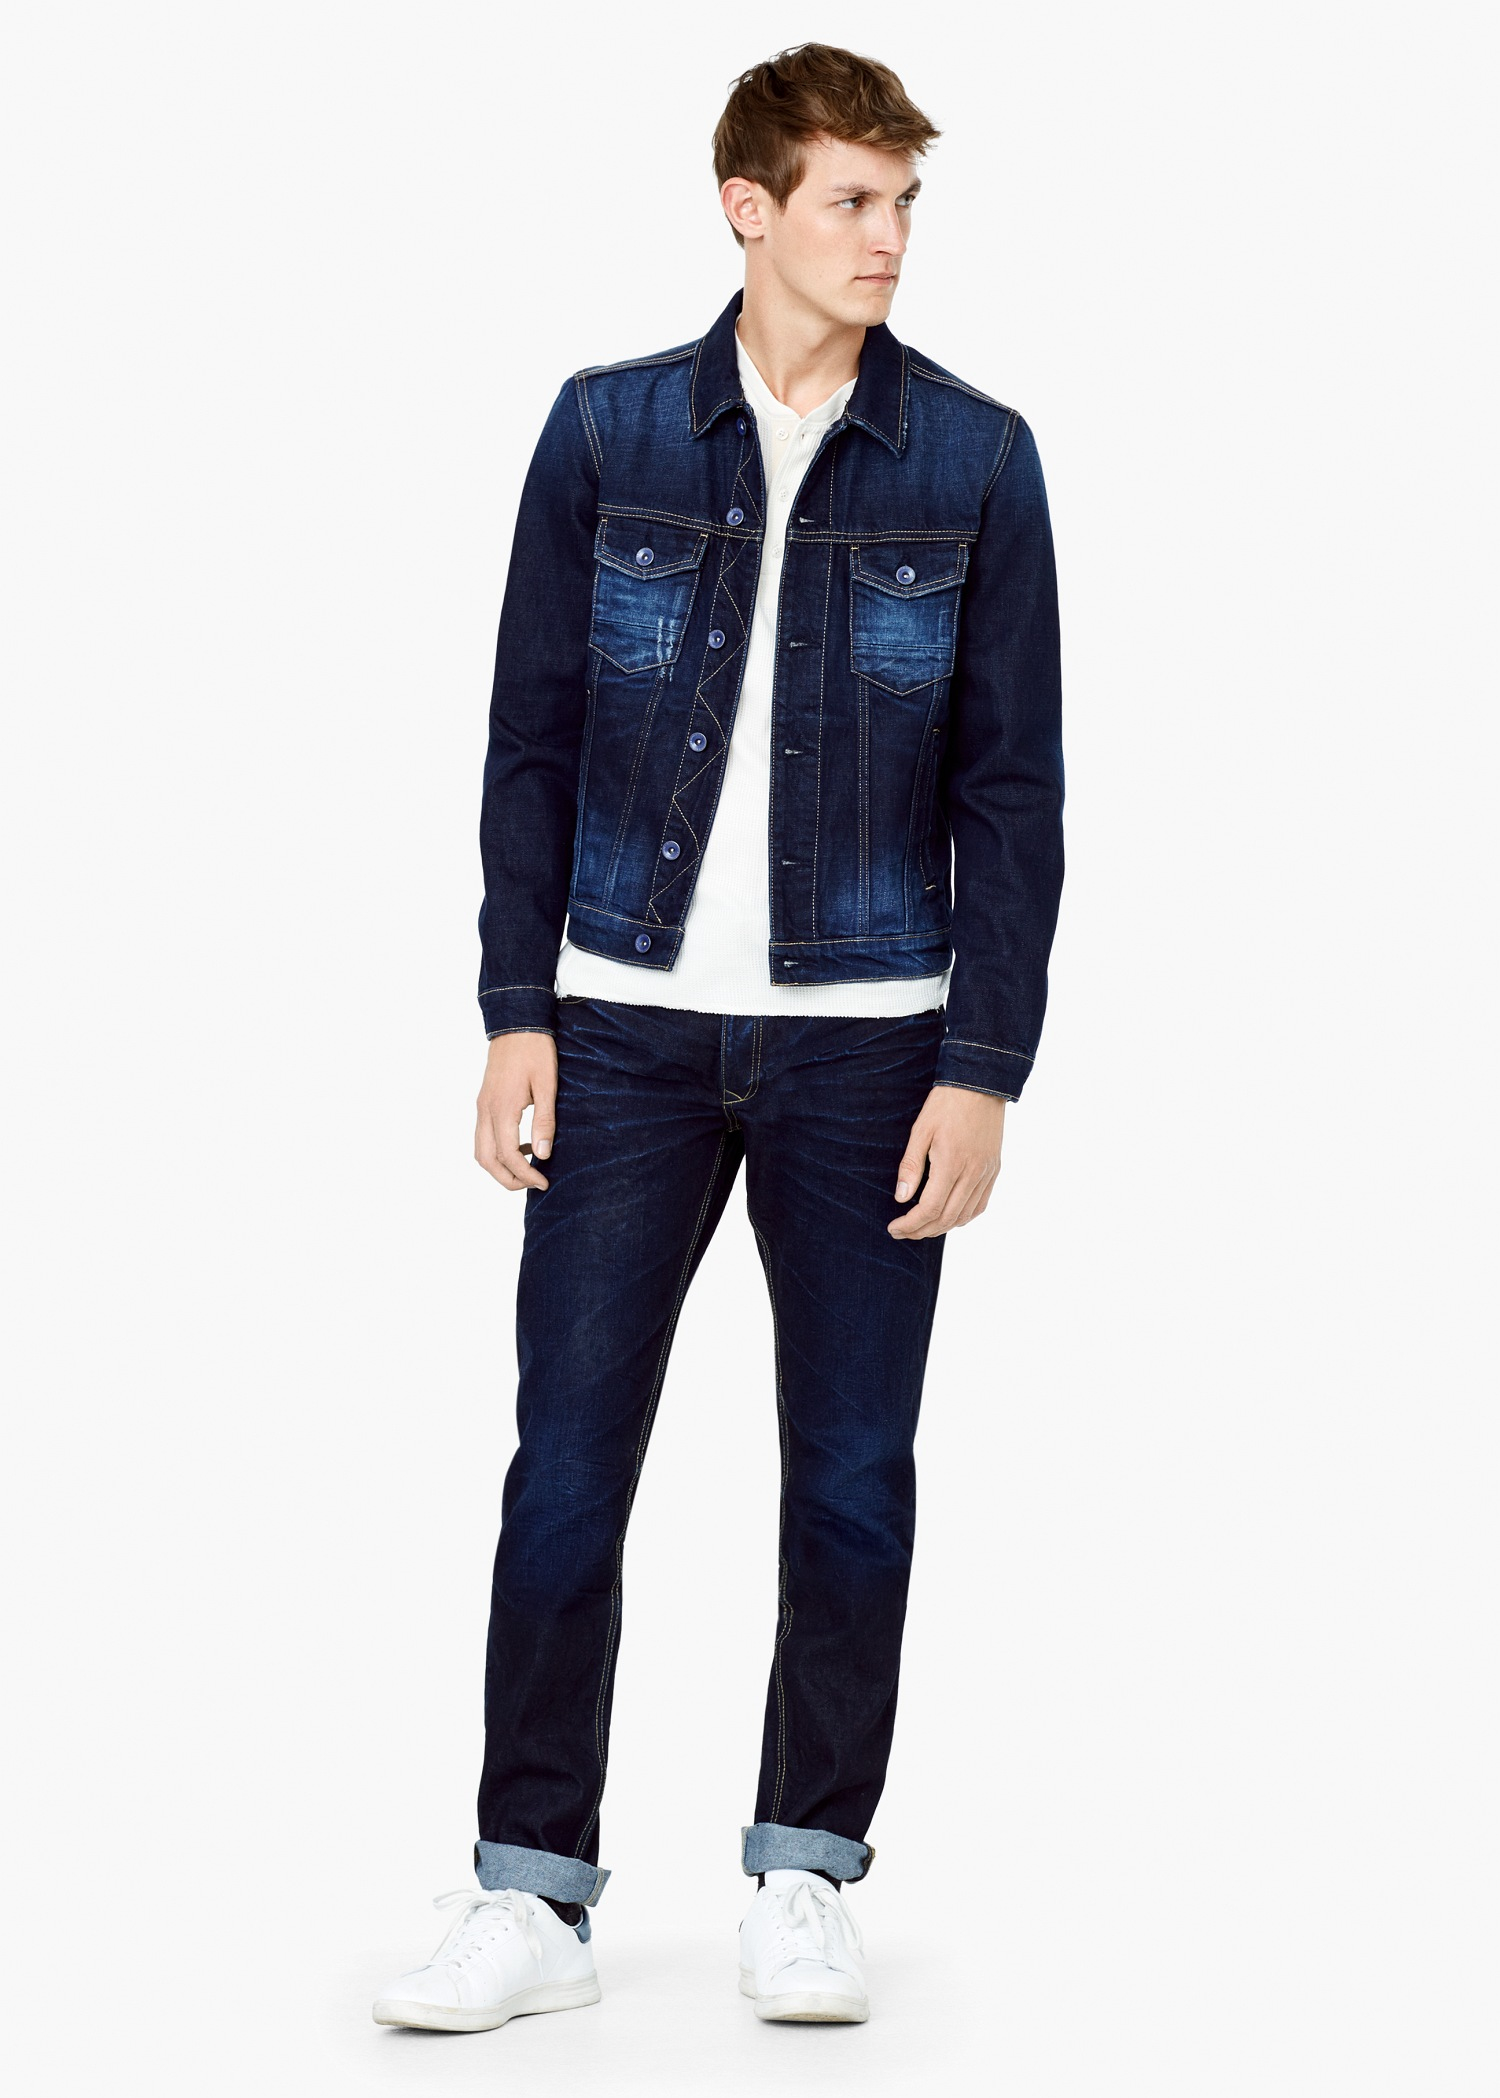 Mens Dark Blue Denim Jacket - Best Jacket 2017